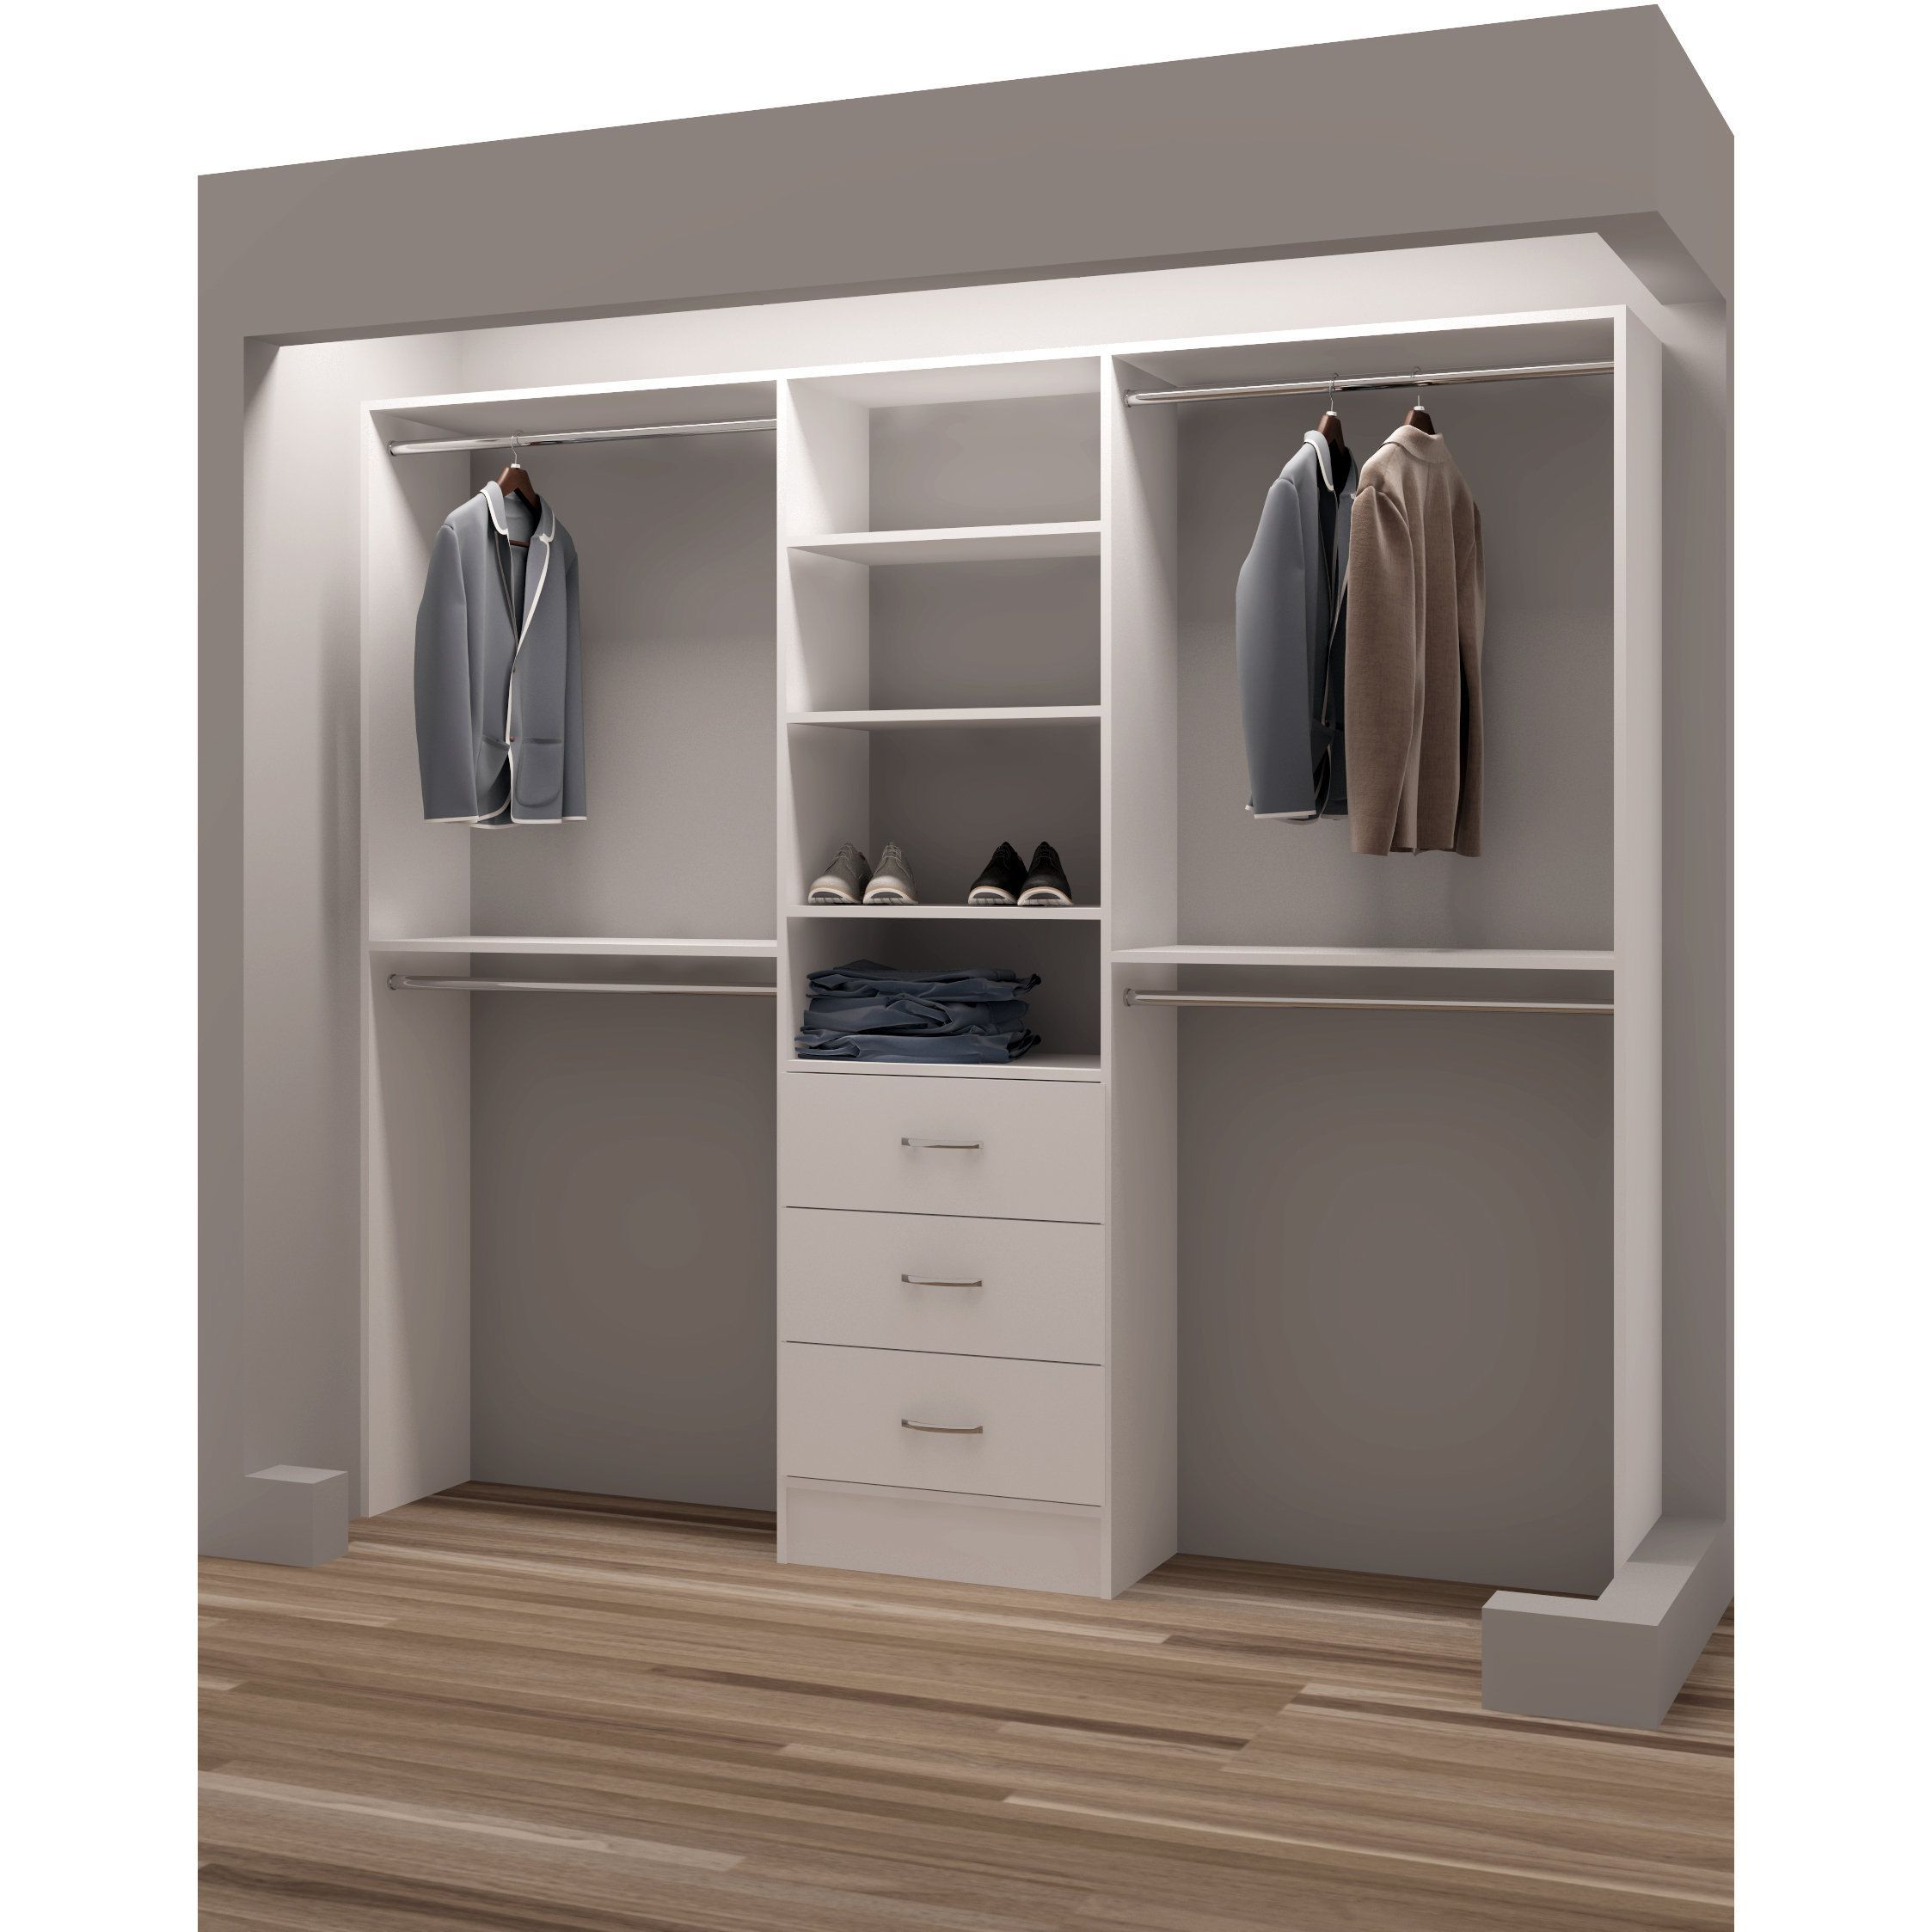 TidySquares Classic Wood 87 Inch Reach In Closet Organizer